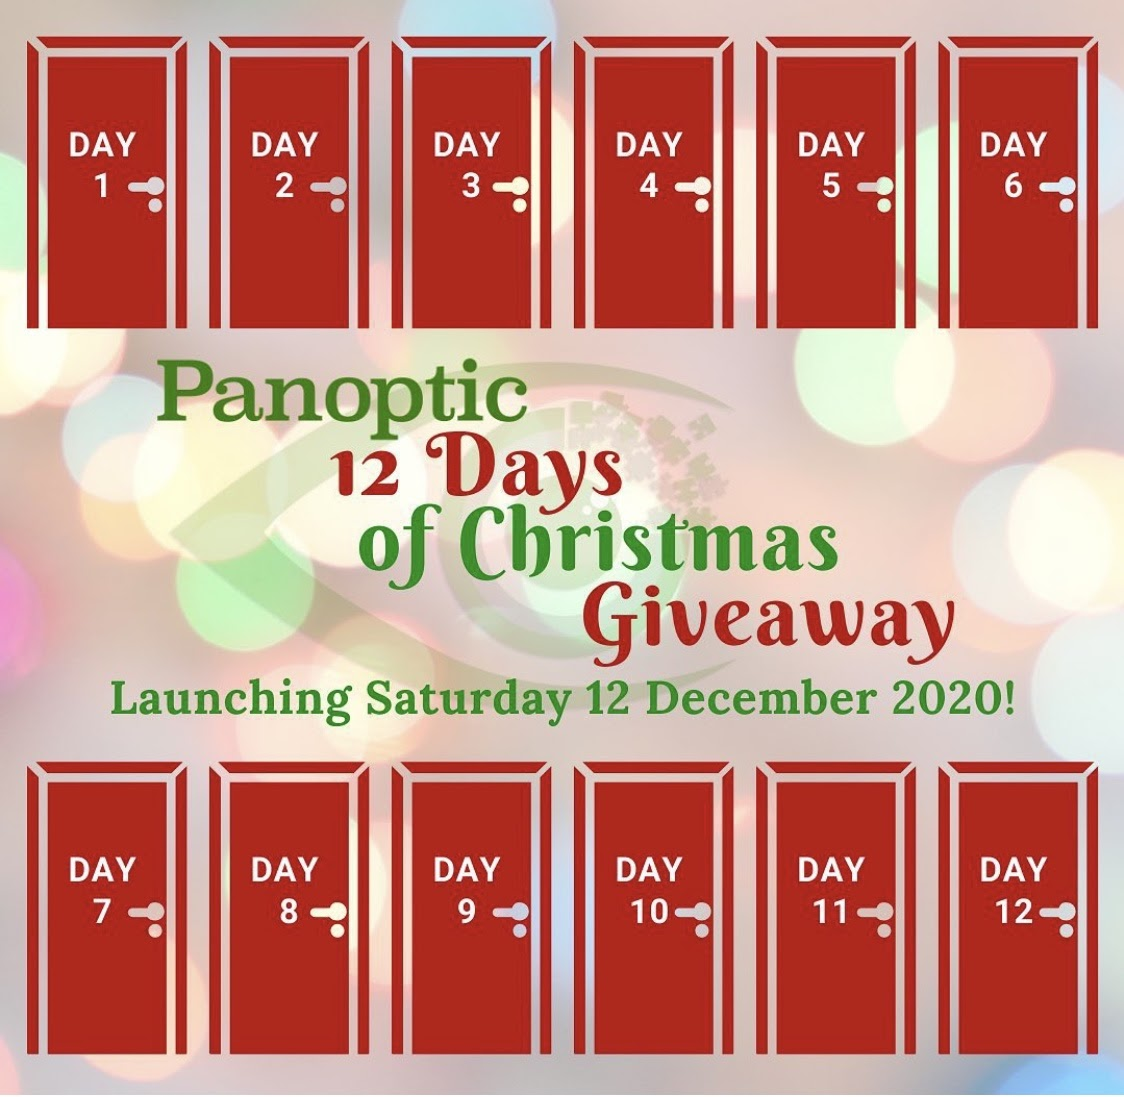 Panoptic's Christmas Giveaway Competition Announcement